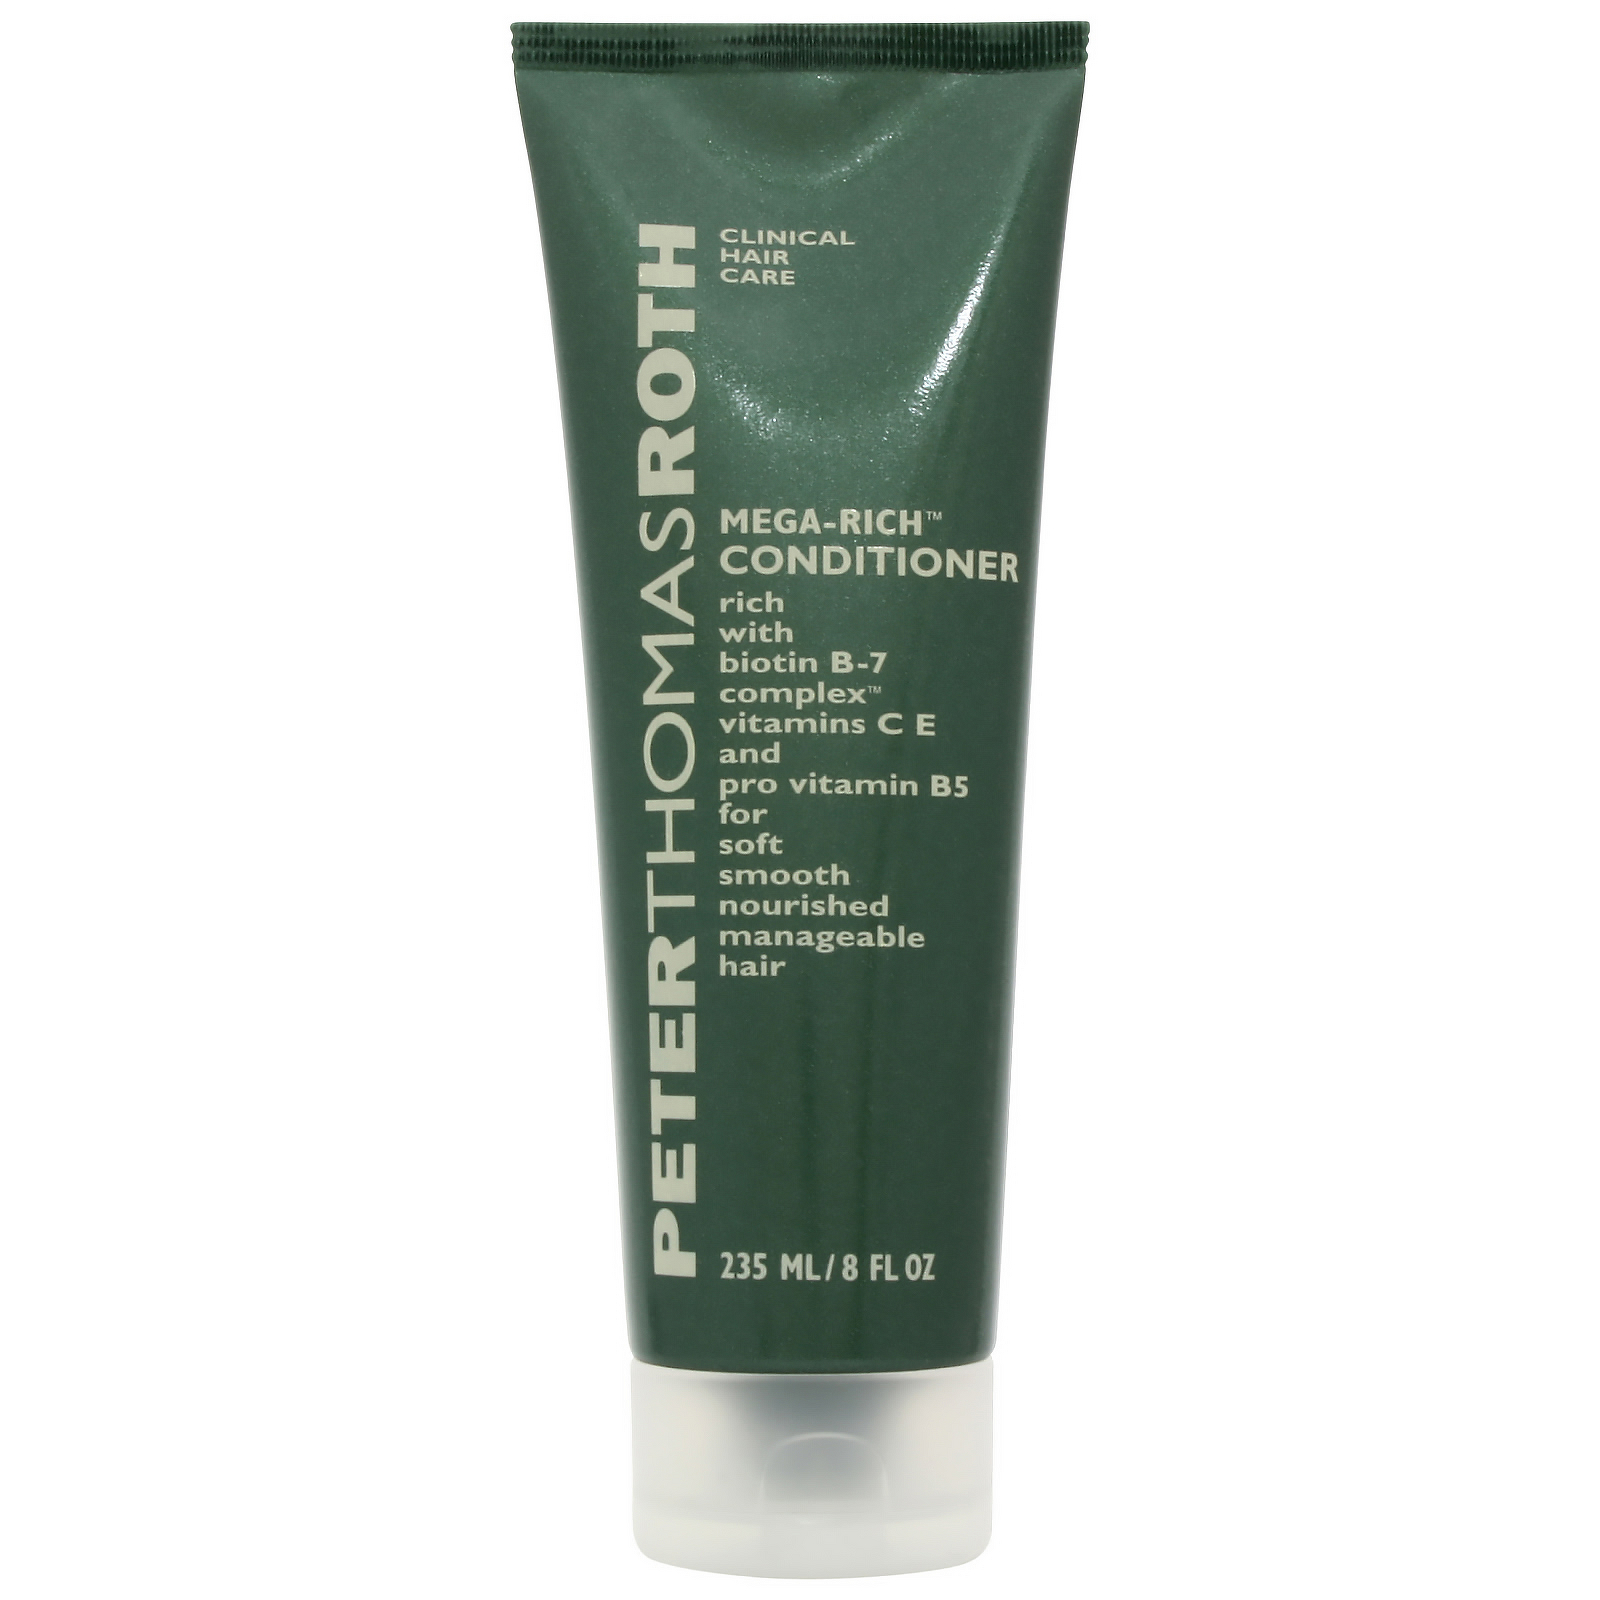 Peter Thomas Roth Mega-Rich Conditioner 235ml